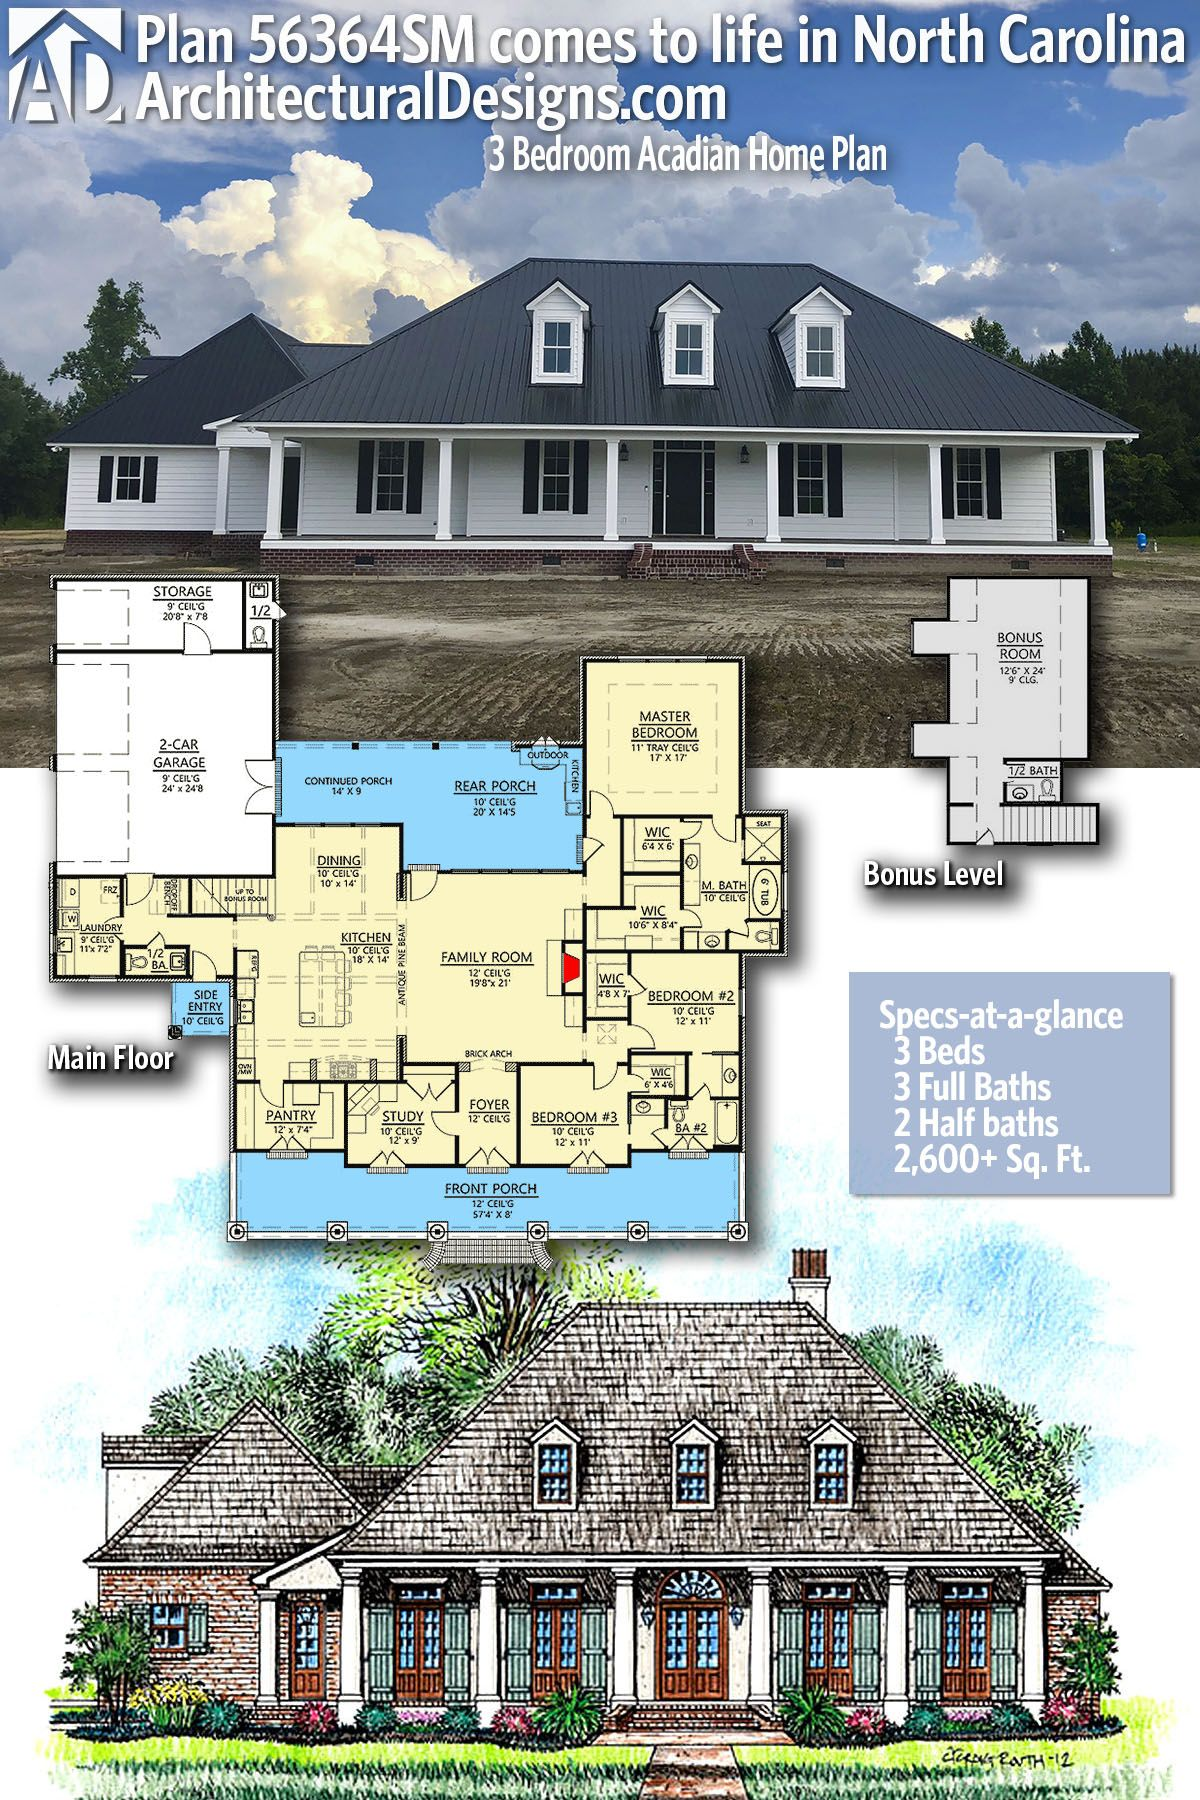 Architectural Designs Acadian House Plan 56364SM client built